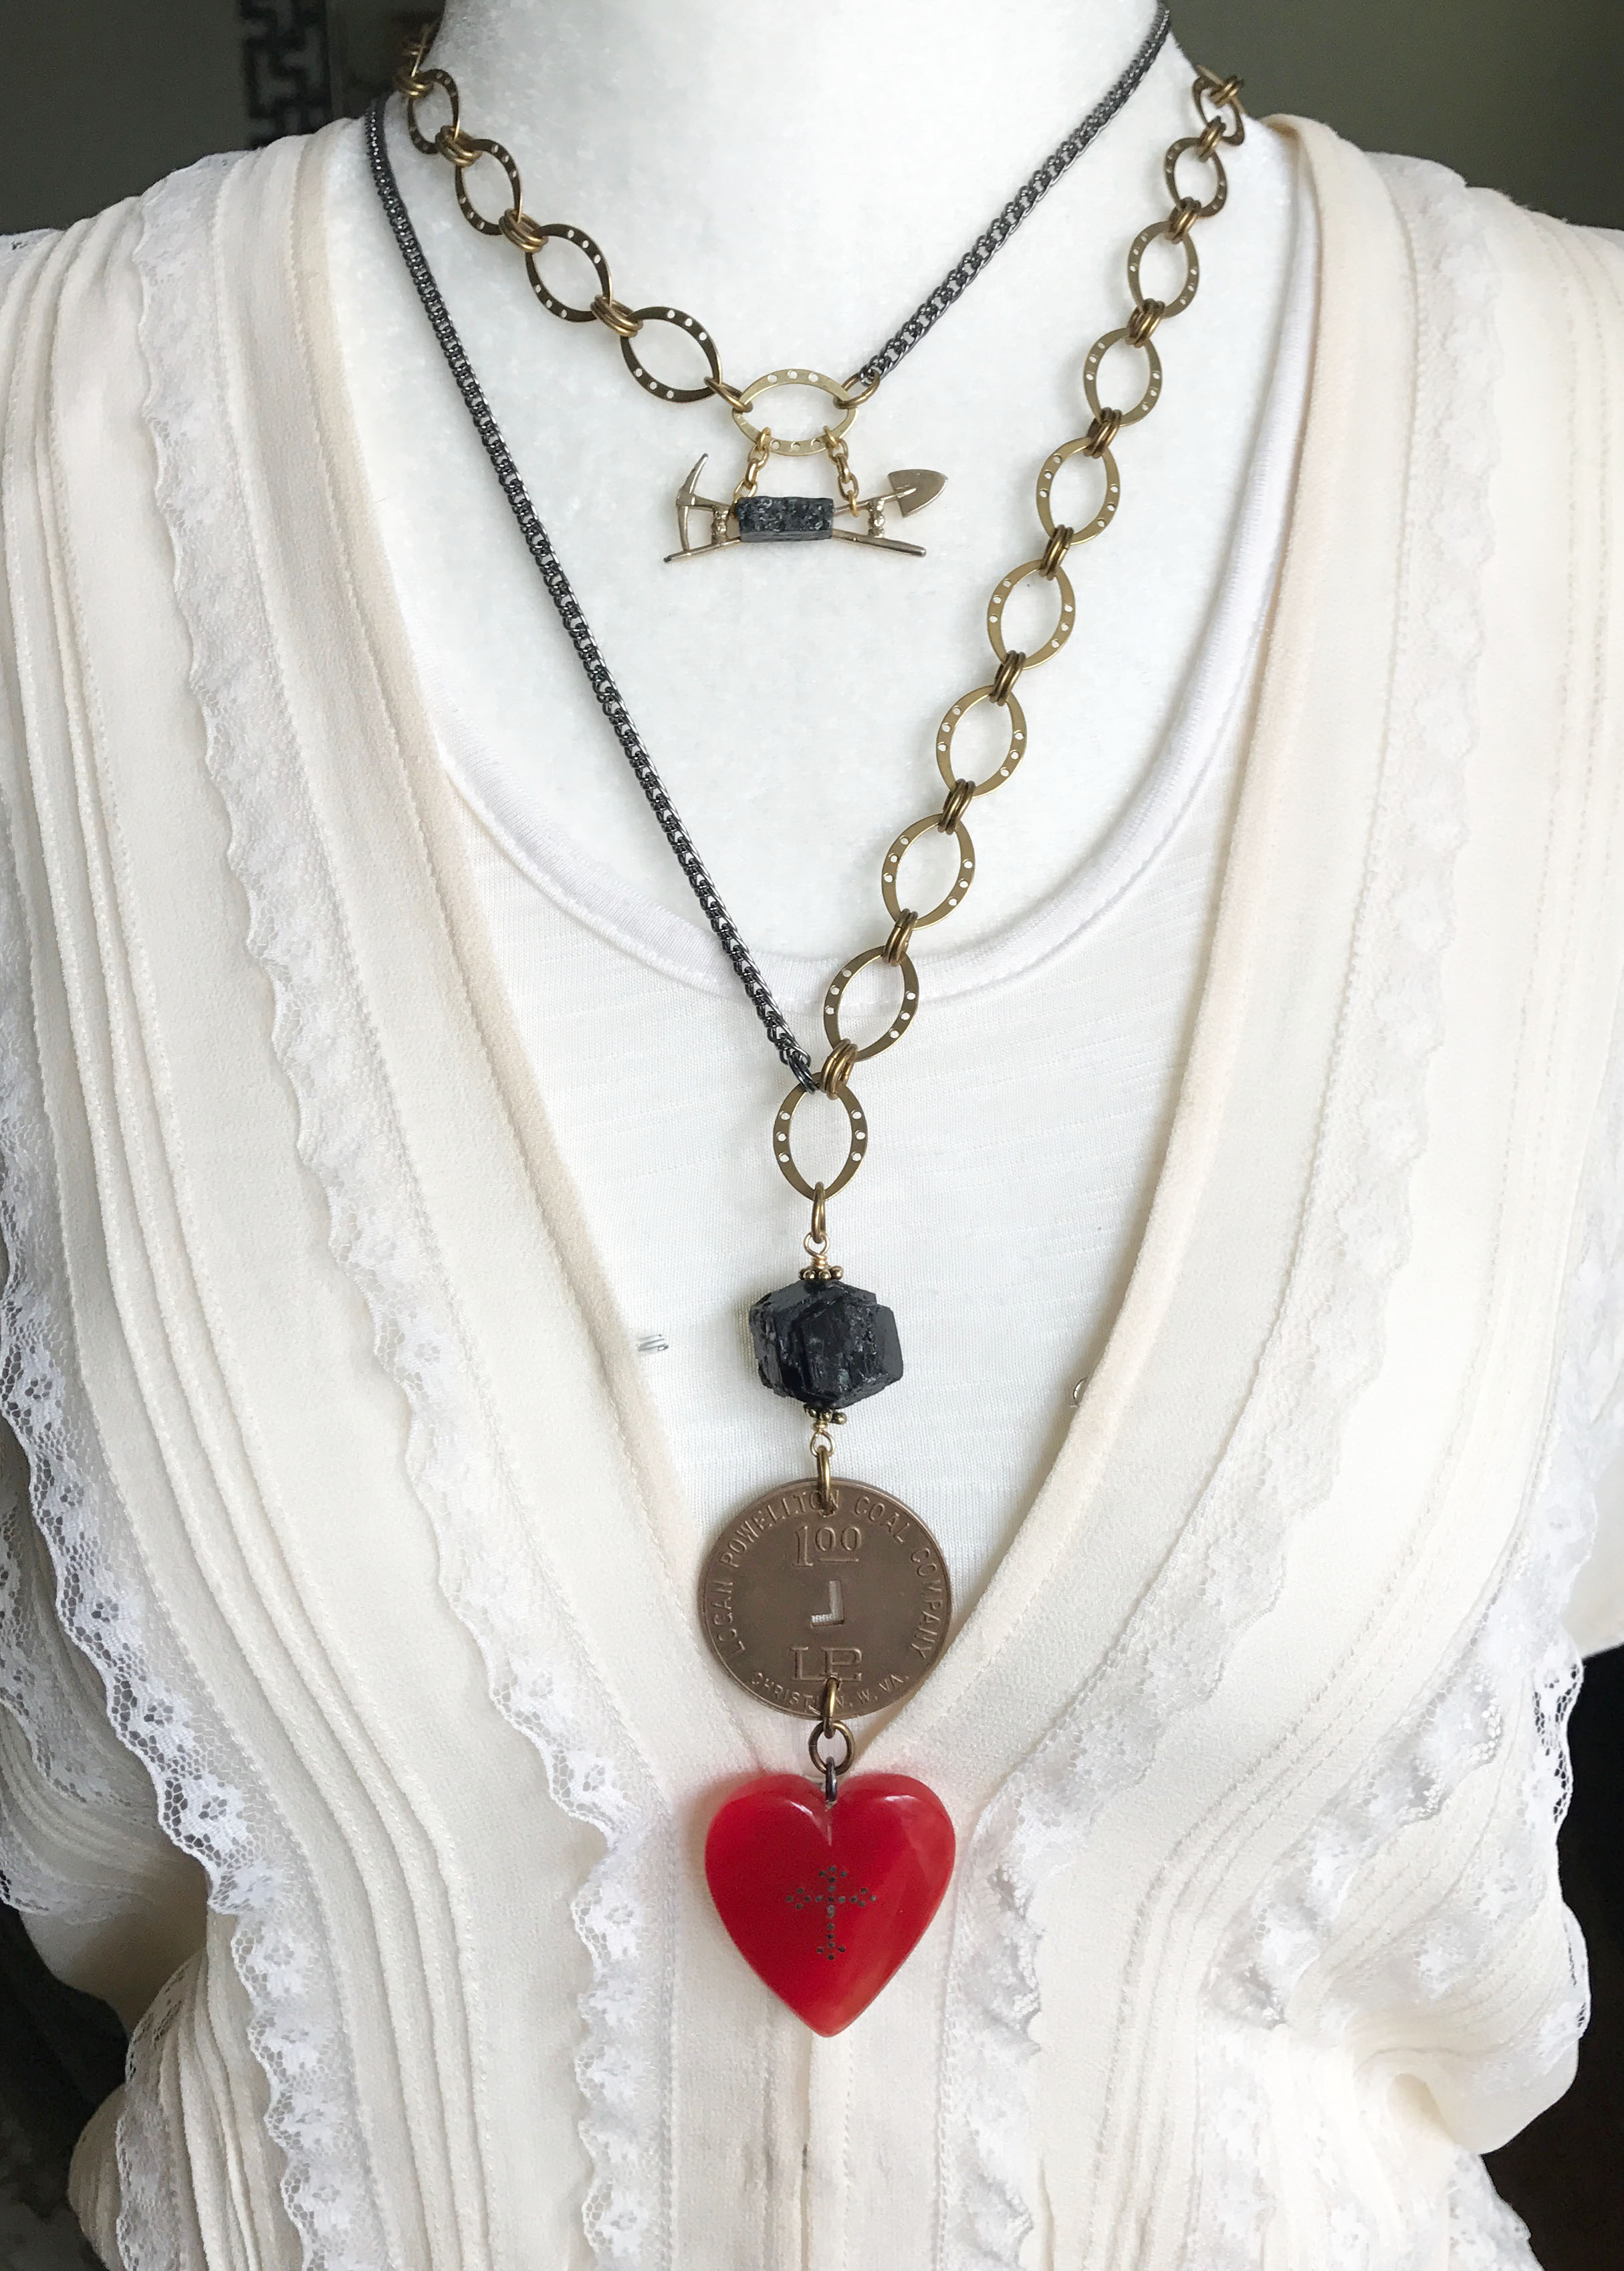 This Glamourbilly necklace set feature a pick and shovel brooch with a real piece of coal and a piece of scrip from Logan Powellton Coal Company from Christian, West Virginia.